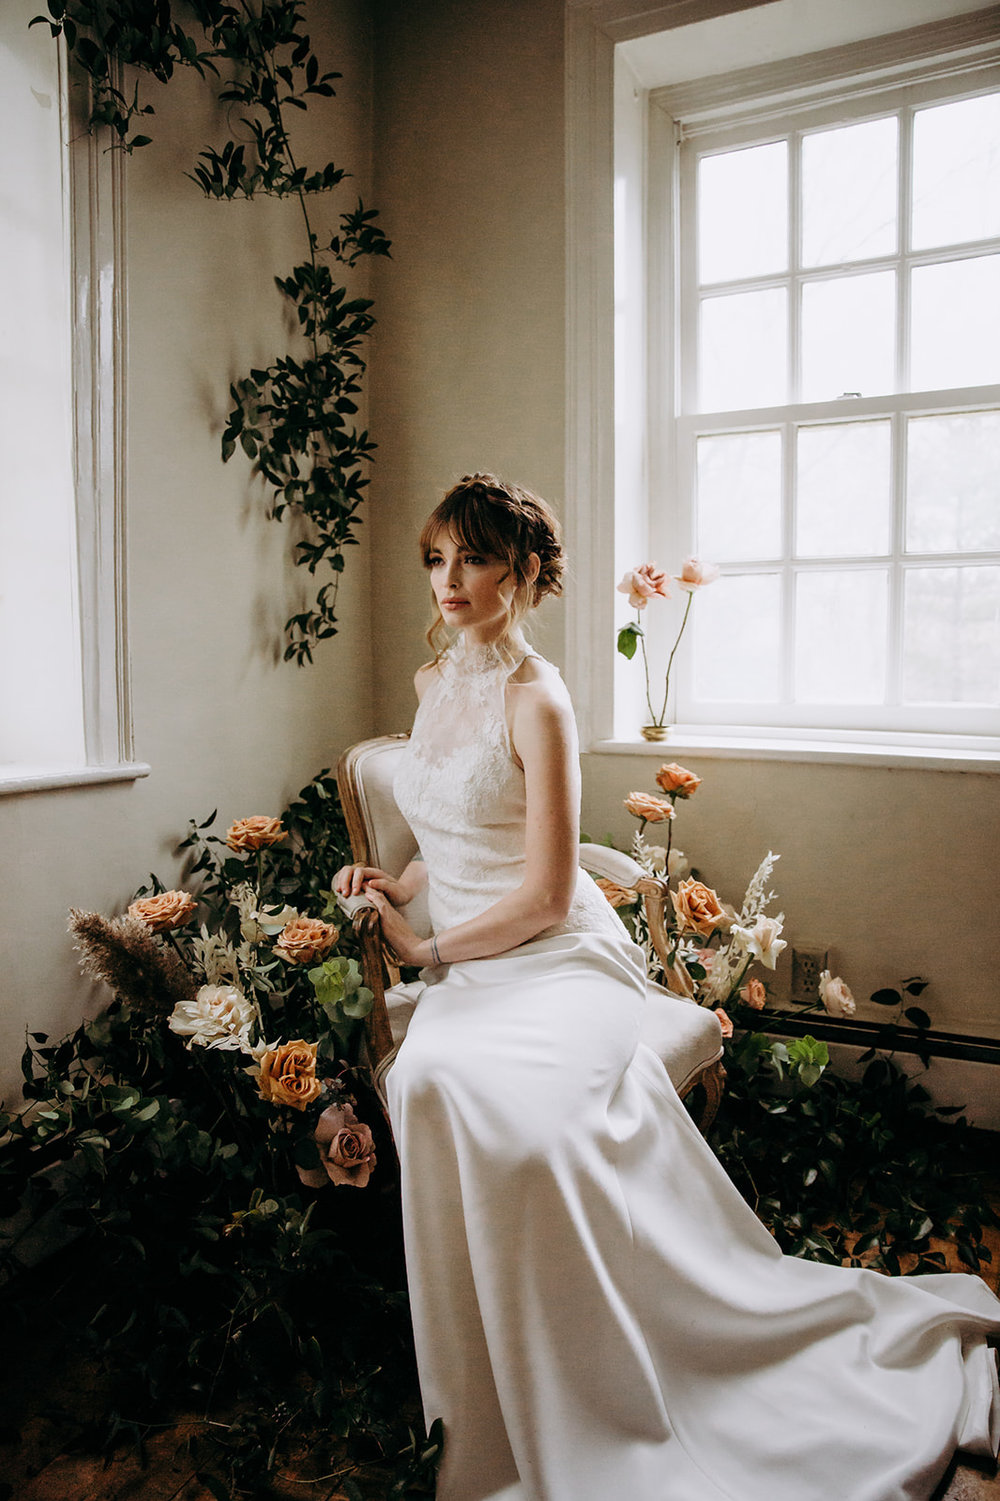 lea-ann-belter-bridal-editorial-windrift-hall-wedding-photographer-new-york-118.jpg